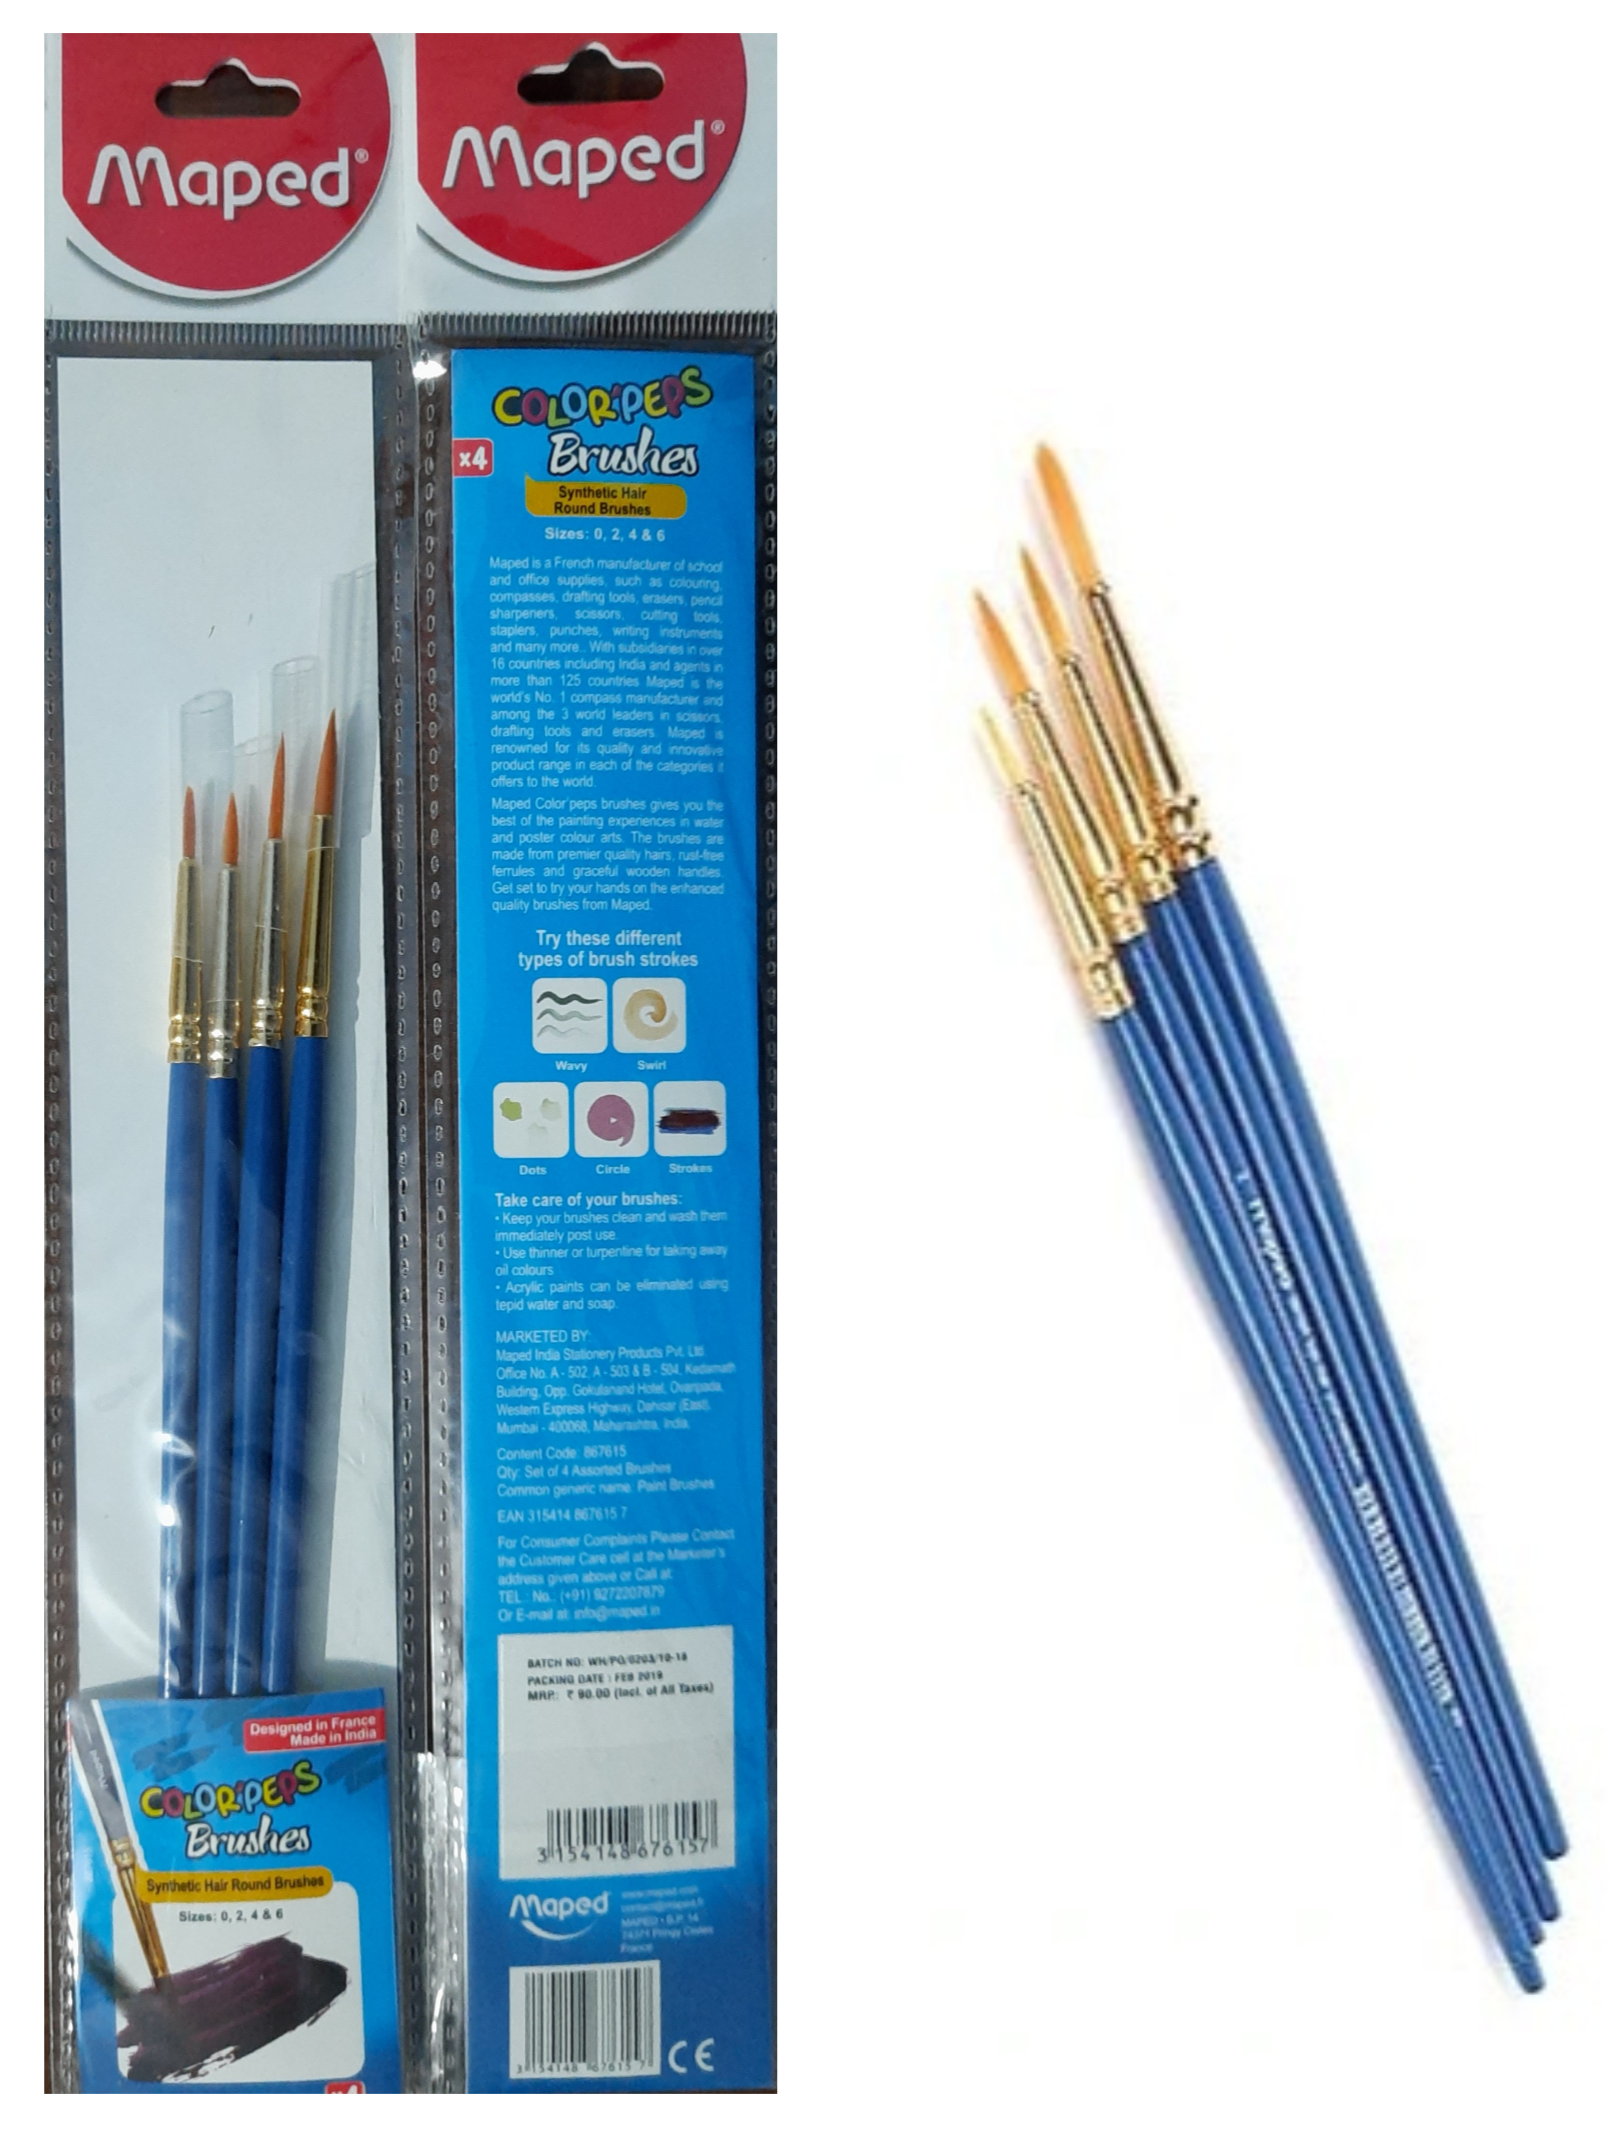 Maped Colour Peps Synthetic Round Brush Set of 4 - Blue